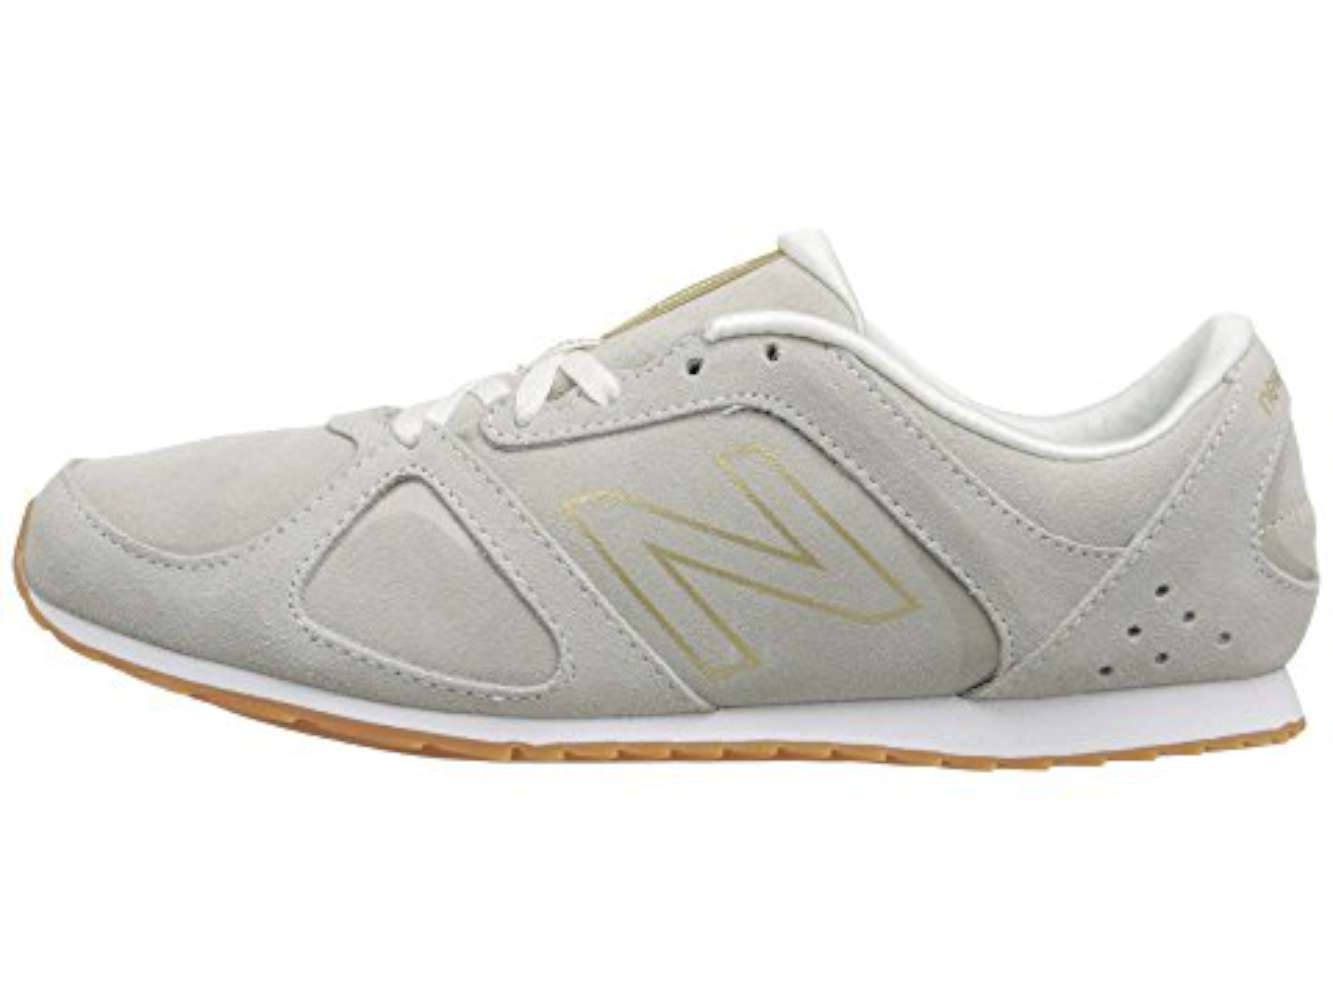 New Balance Womens WL5555WG Lifestyle Fabric Low Top Grey Gold Combo Size  7.5 - mainstreetblytheville.org 30e33657a22